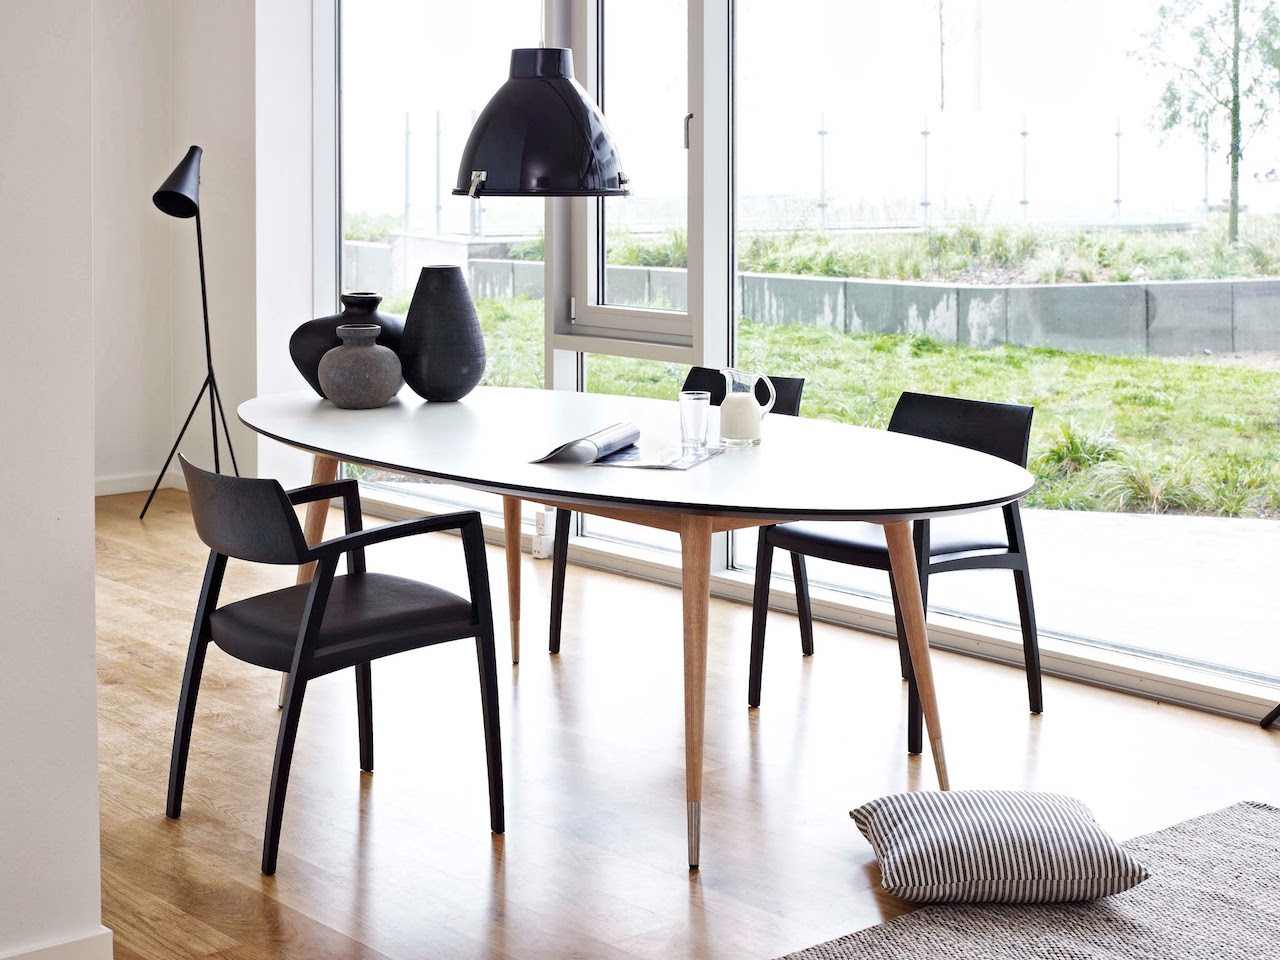 naver collection point gm9942 gm9952 ovaler tisch nordic urban gmbh. Black Bedroom Furniture Sets. Home Design Ideas